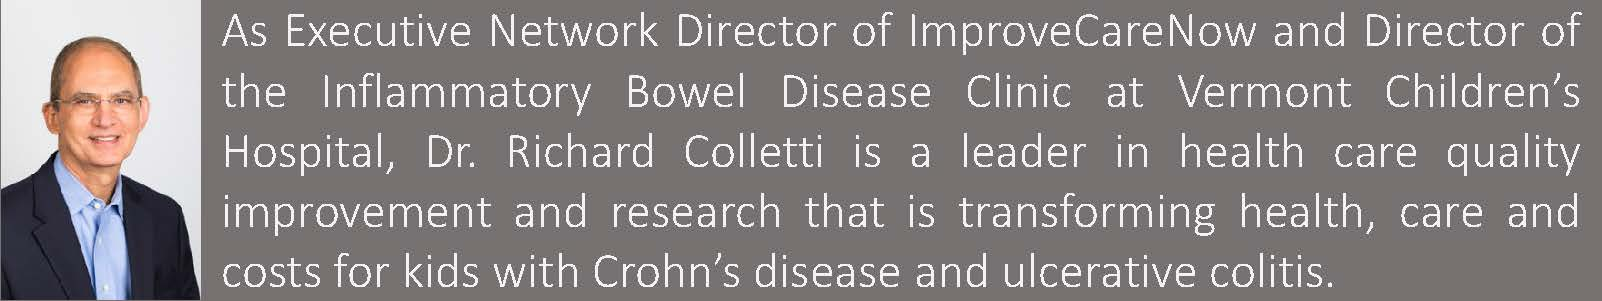 Richard B. Colletti, MD is the Executive Network Director for ImproveCareNow and Director of the Inflammatory Bowel Disease Clinic at Vermont Children's Hospital